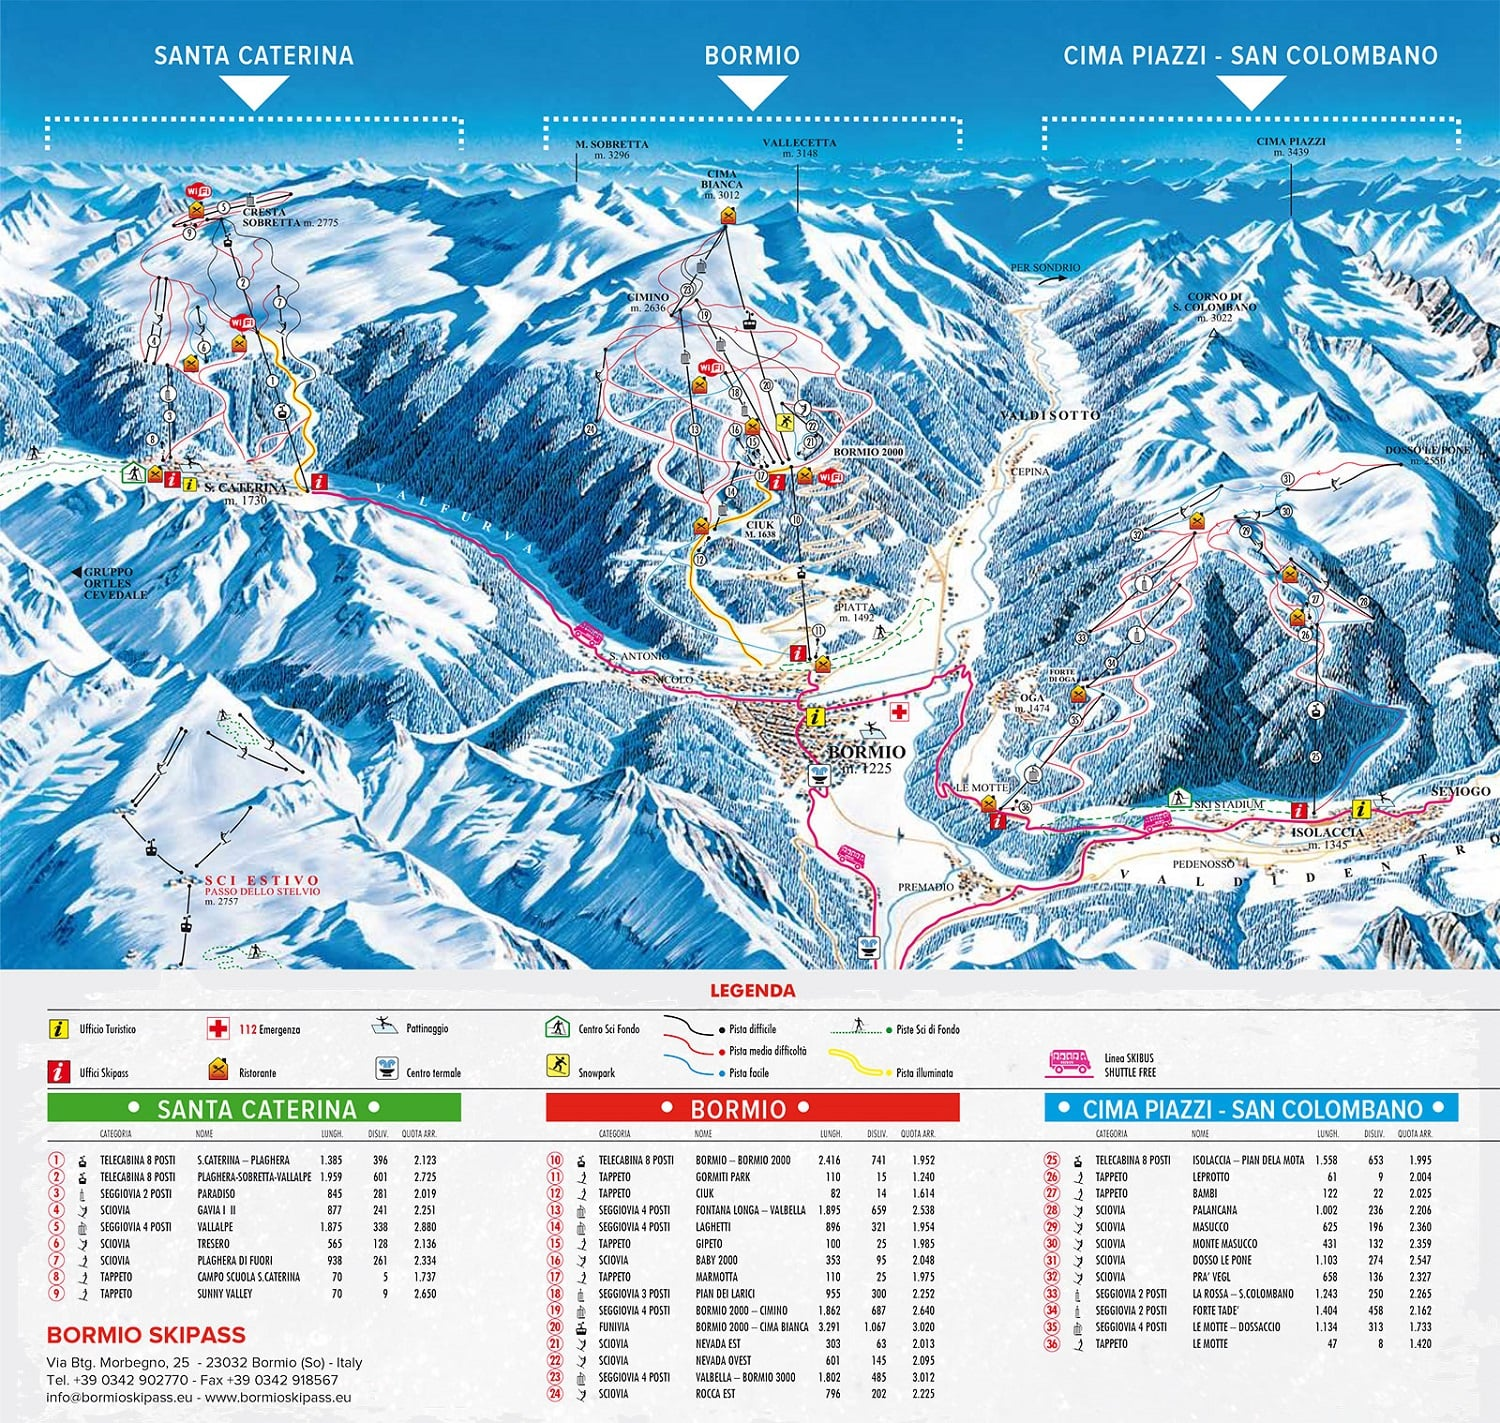 Everything you need to know about skiing in Bormio